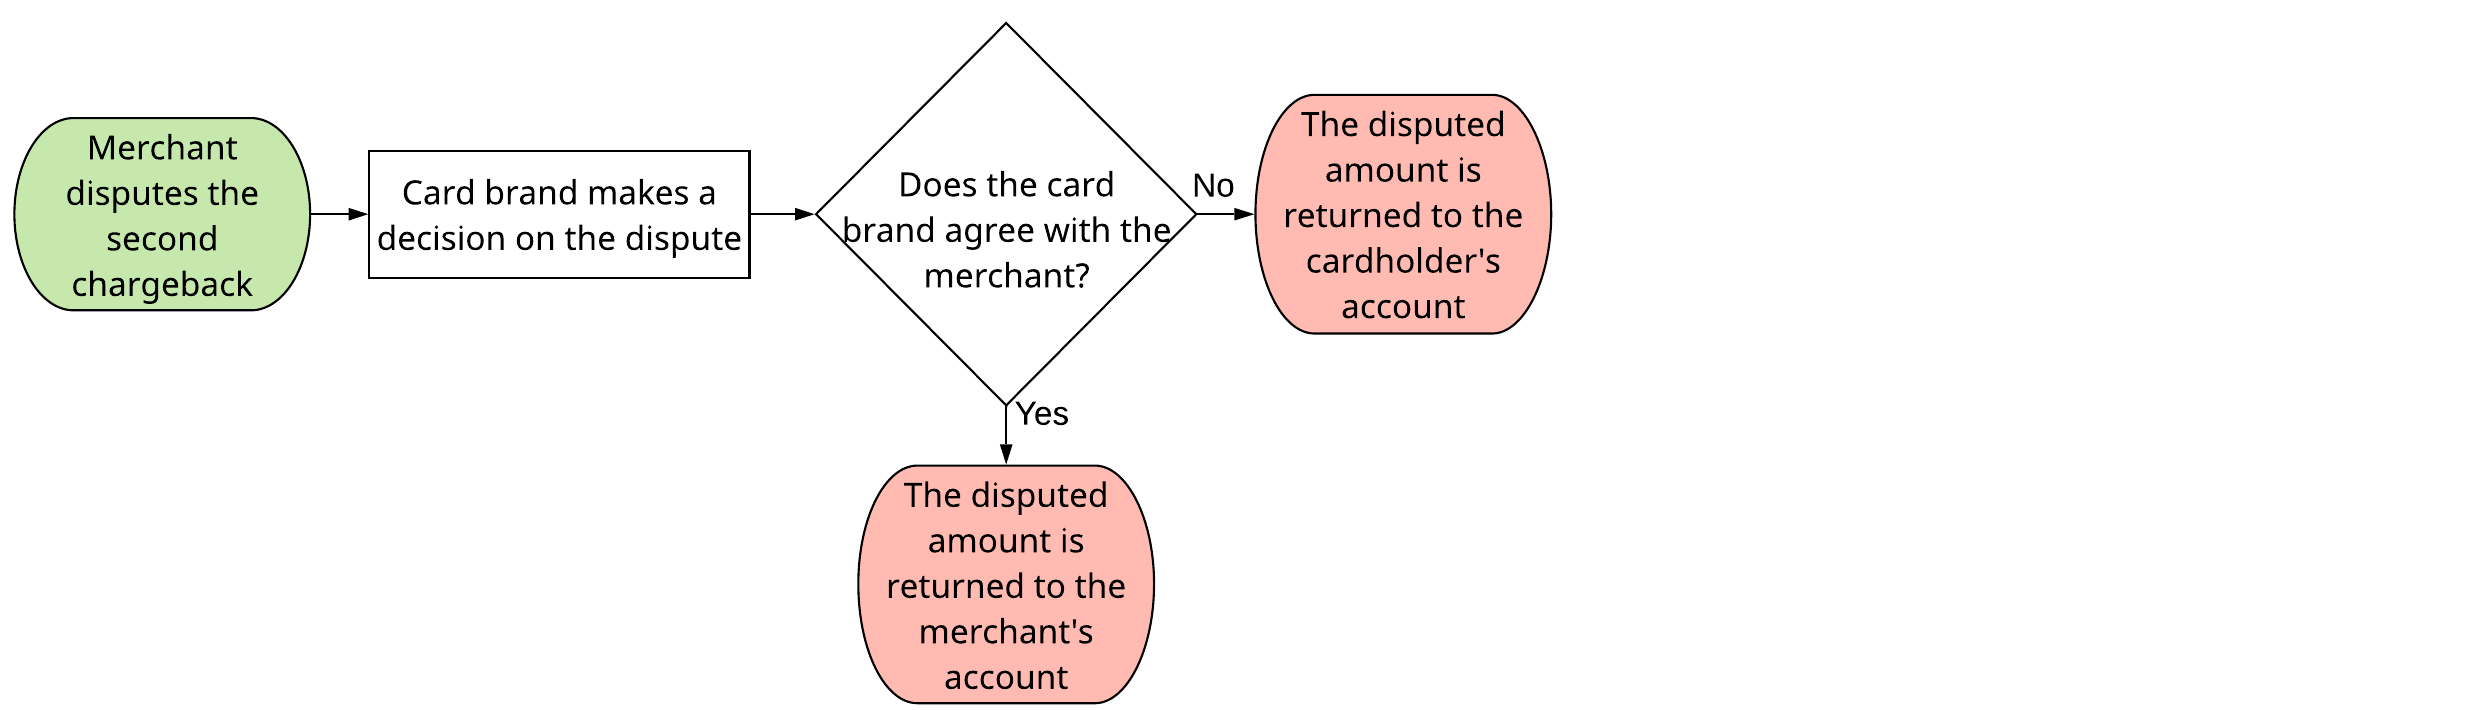 A flowchart that shows the stages of arbitration.